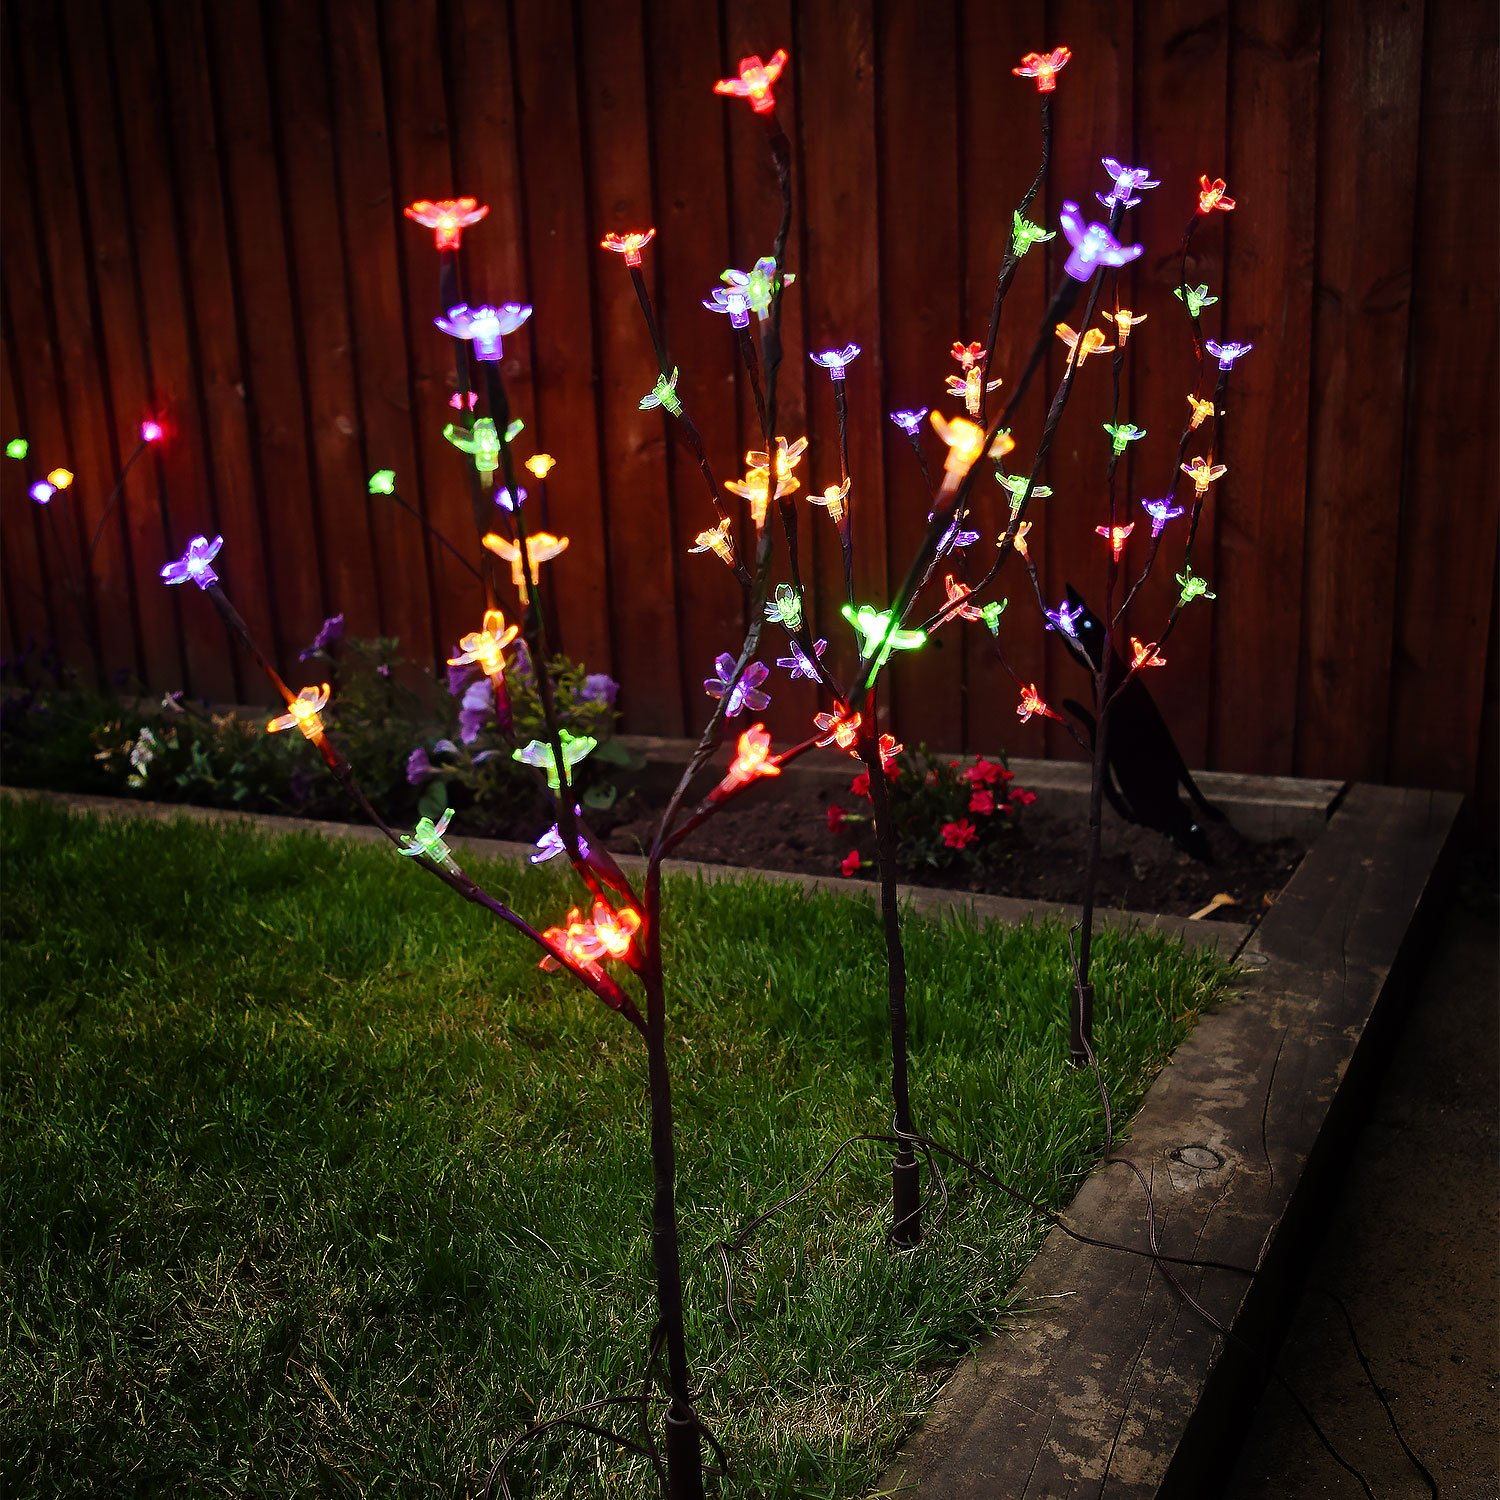 This controller lets you control 4 different branches of lights - Solalite Set Of 3 Stylish Ornamental Solar Powered 60 White Led Branch Lights Outdoor Garden Amazon Co Uk Garden Outdoors